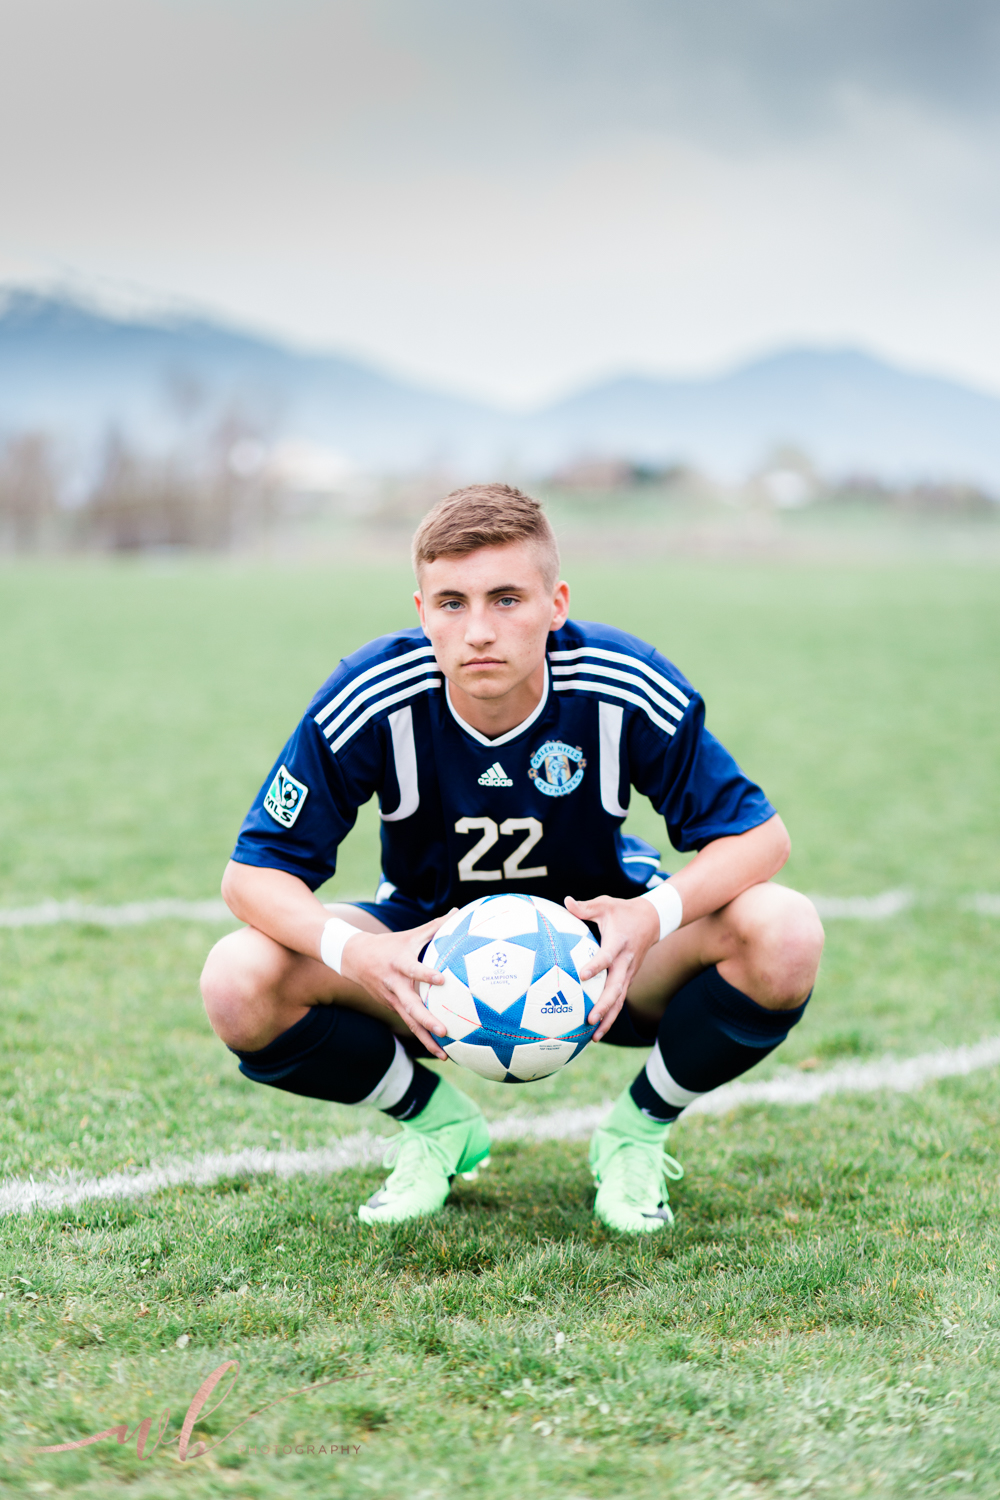 Utah soccer senior pictures